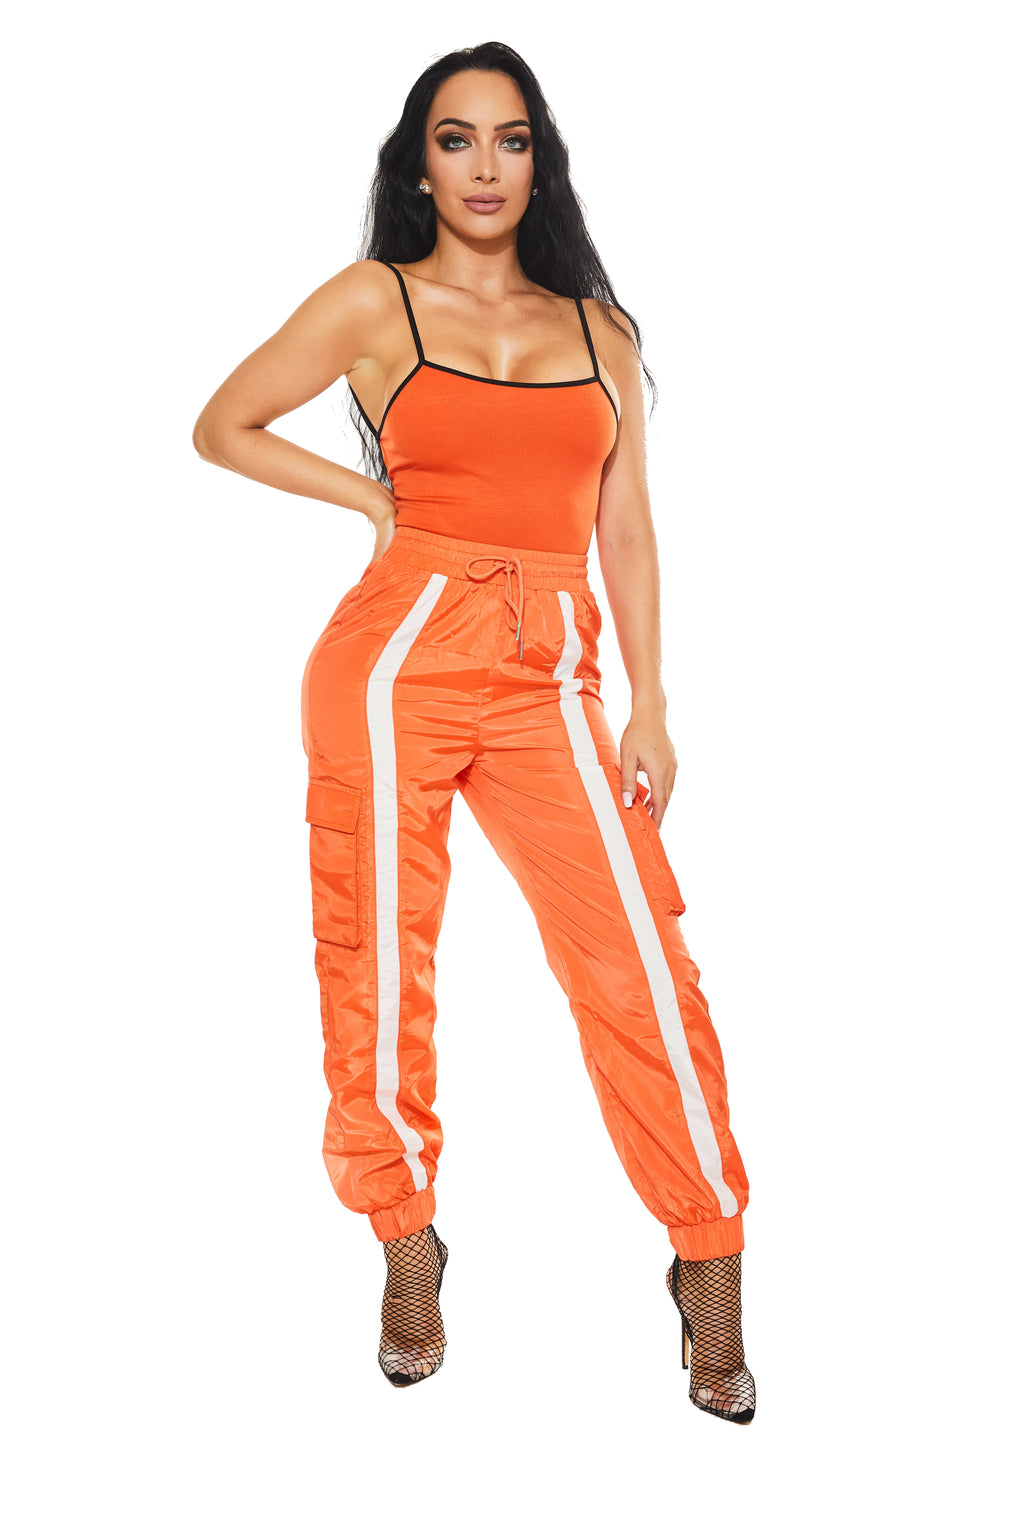 JAIL HOUSE SWAG - Orange Track Pants - www.prettyboutique.com